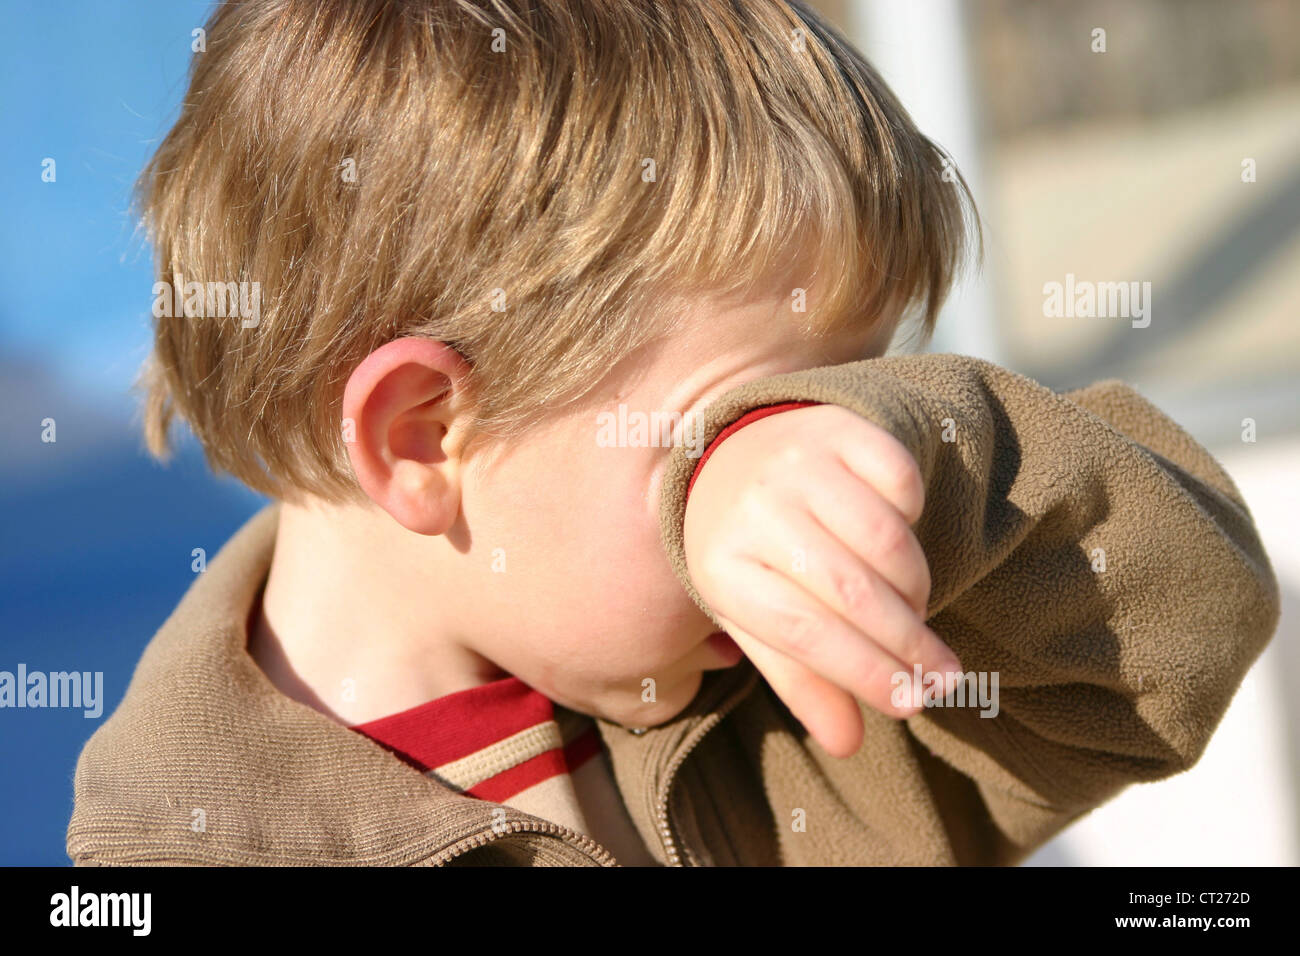 5-12 YEARS OLD CHILD CRYING